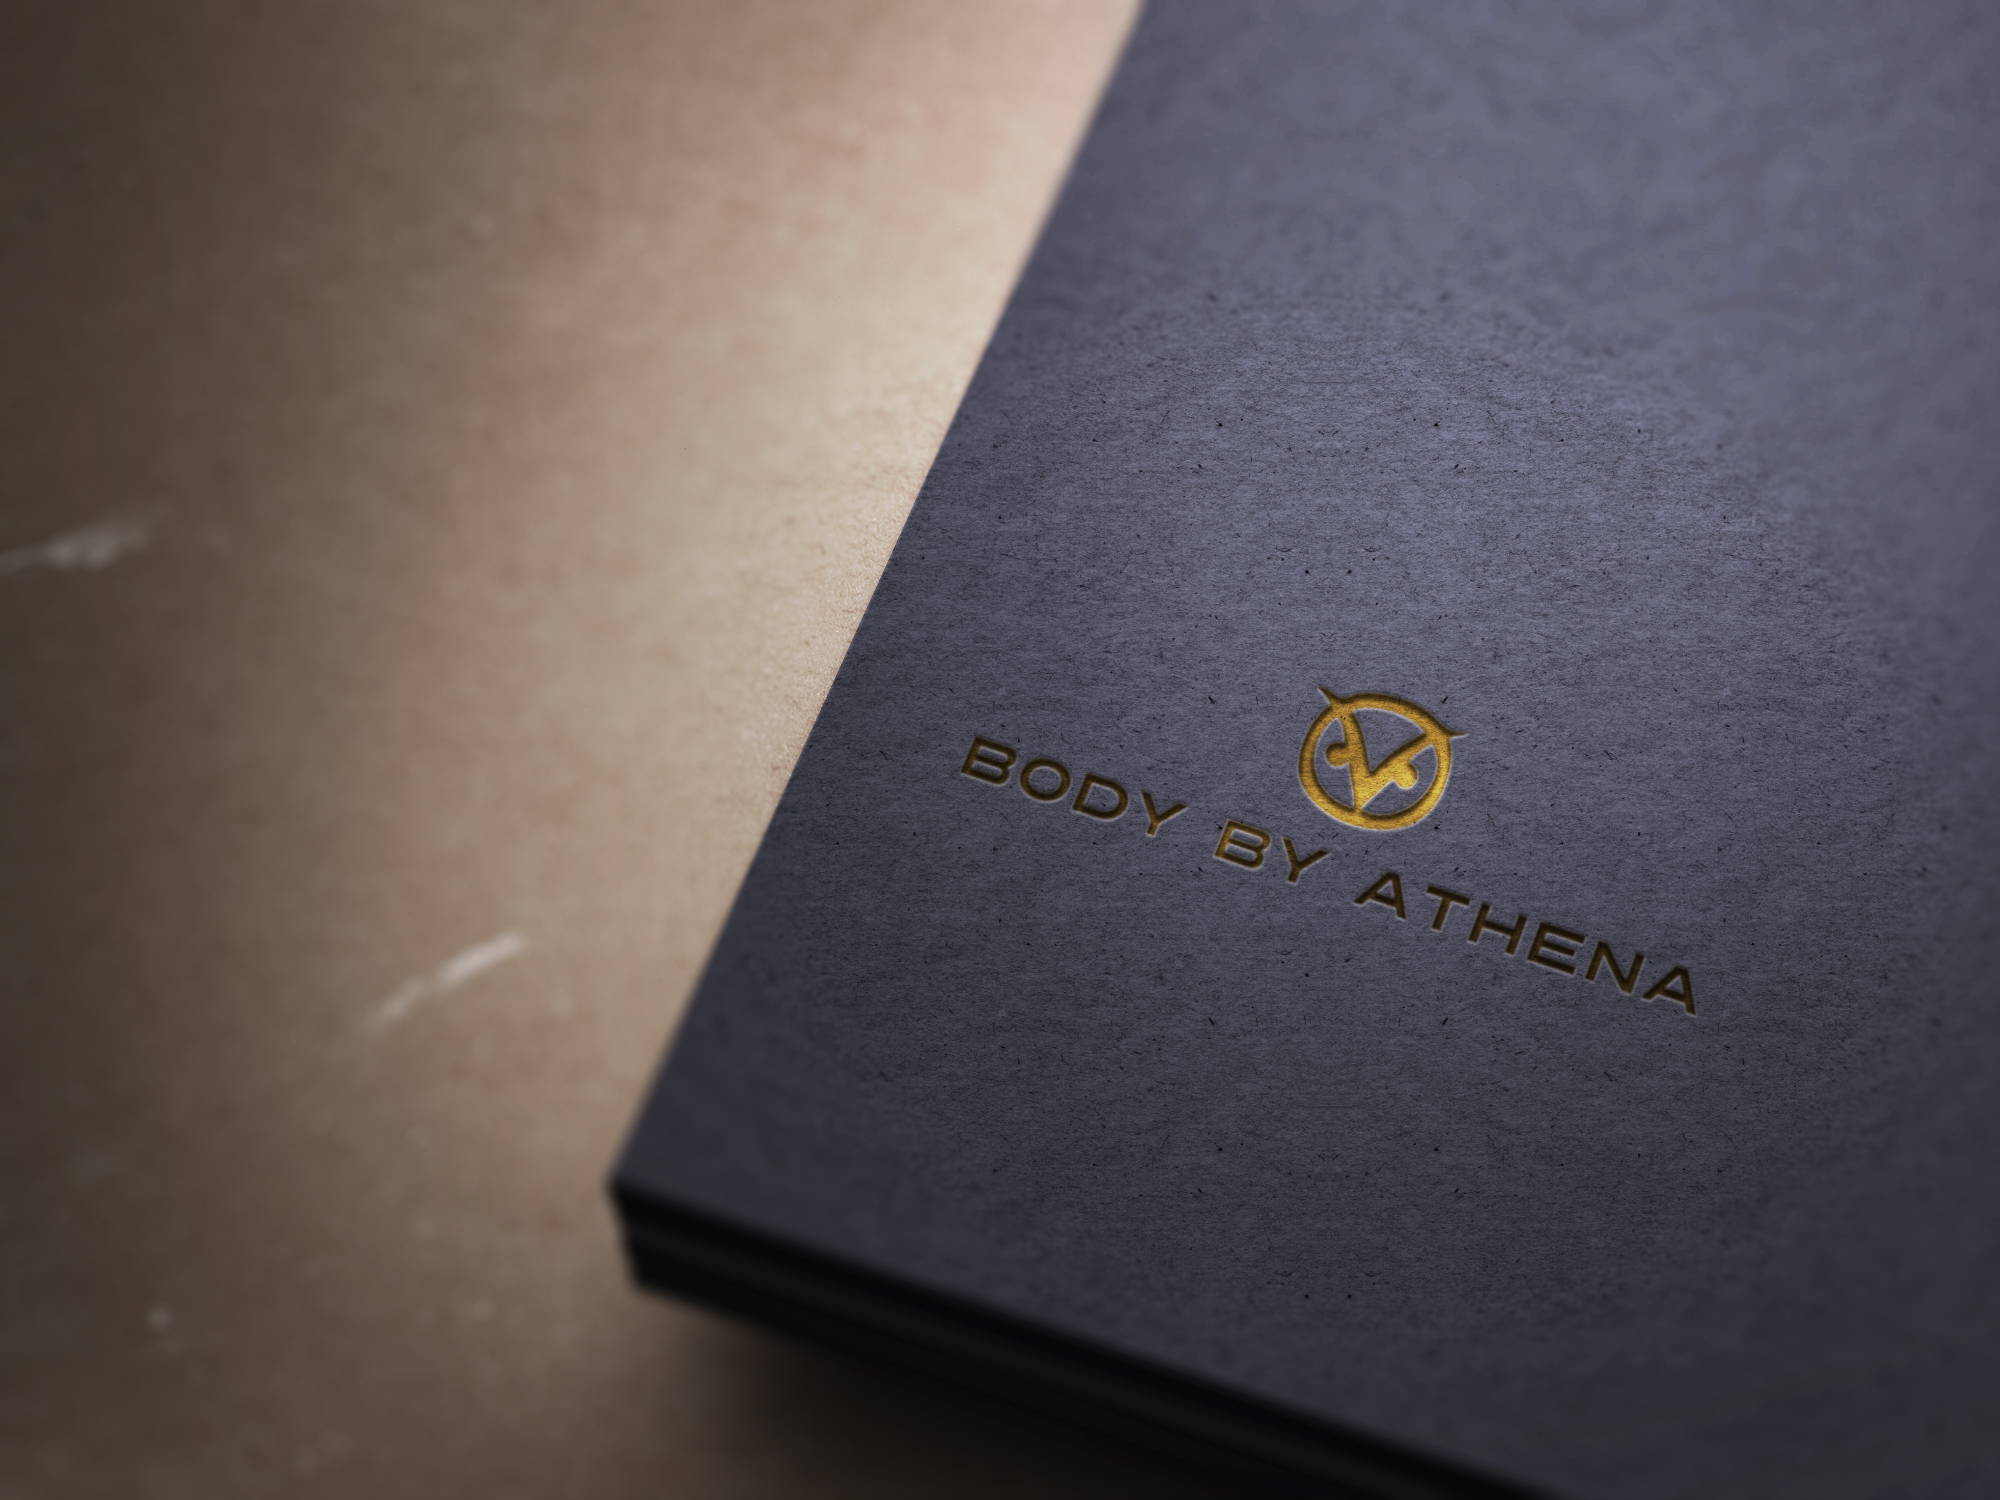 Body By Athena logo & business cards